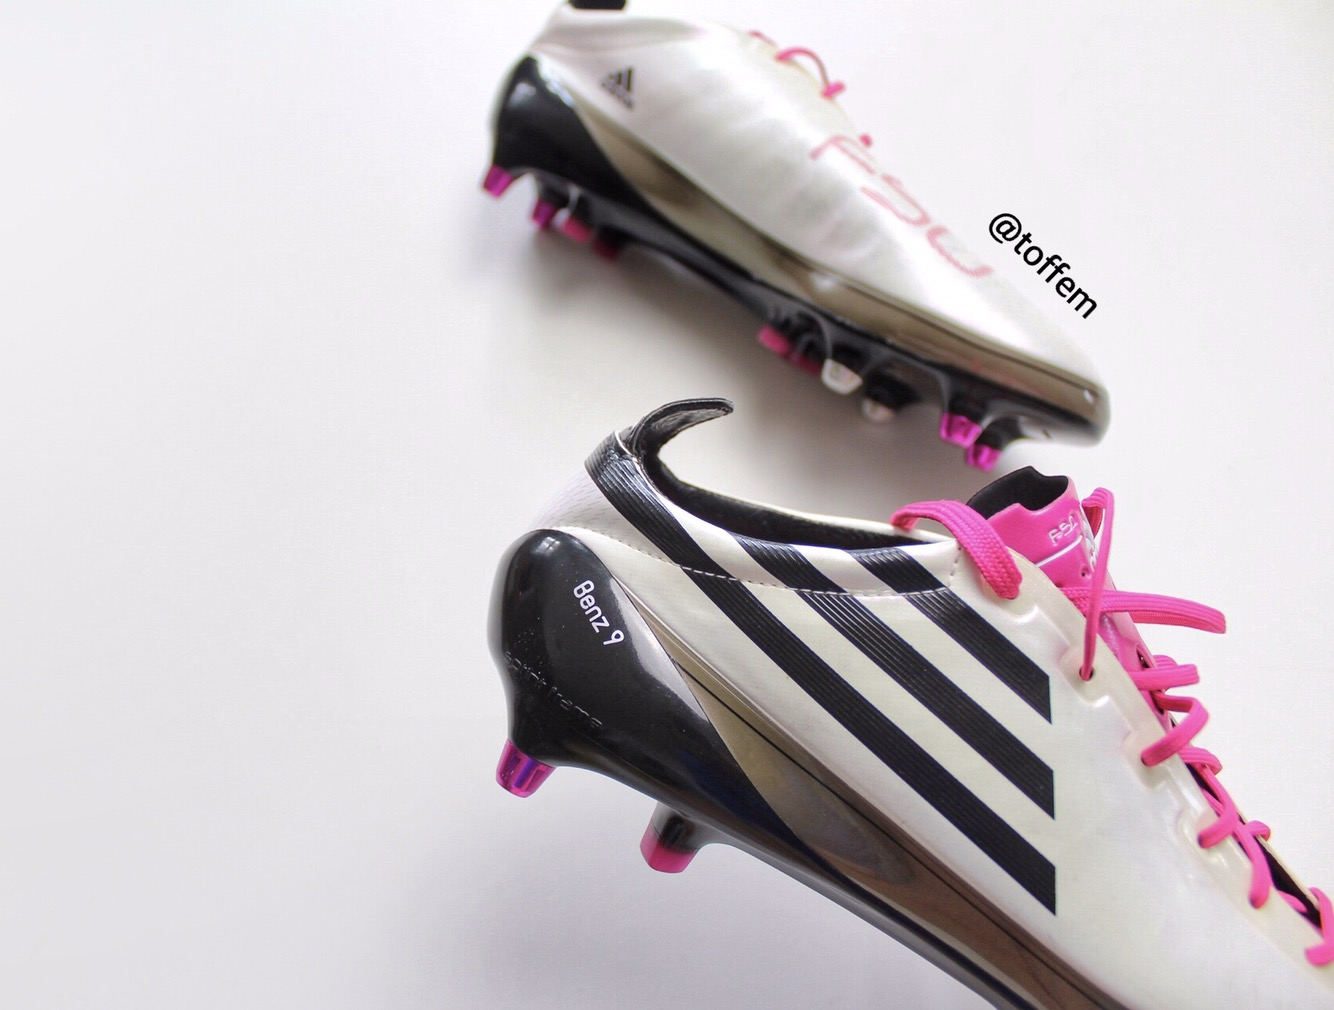 193936c39 I m also happy that these specific boots are the first edition of the  Adidas F50 Adizero range and in the cool white black pink colourway.